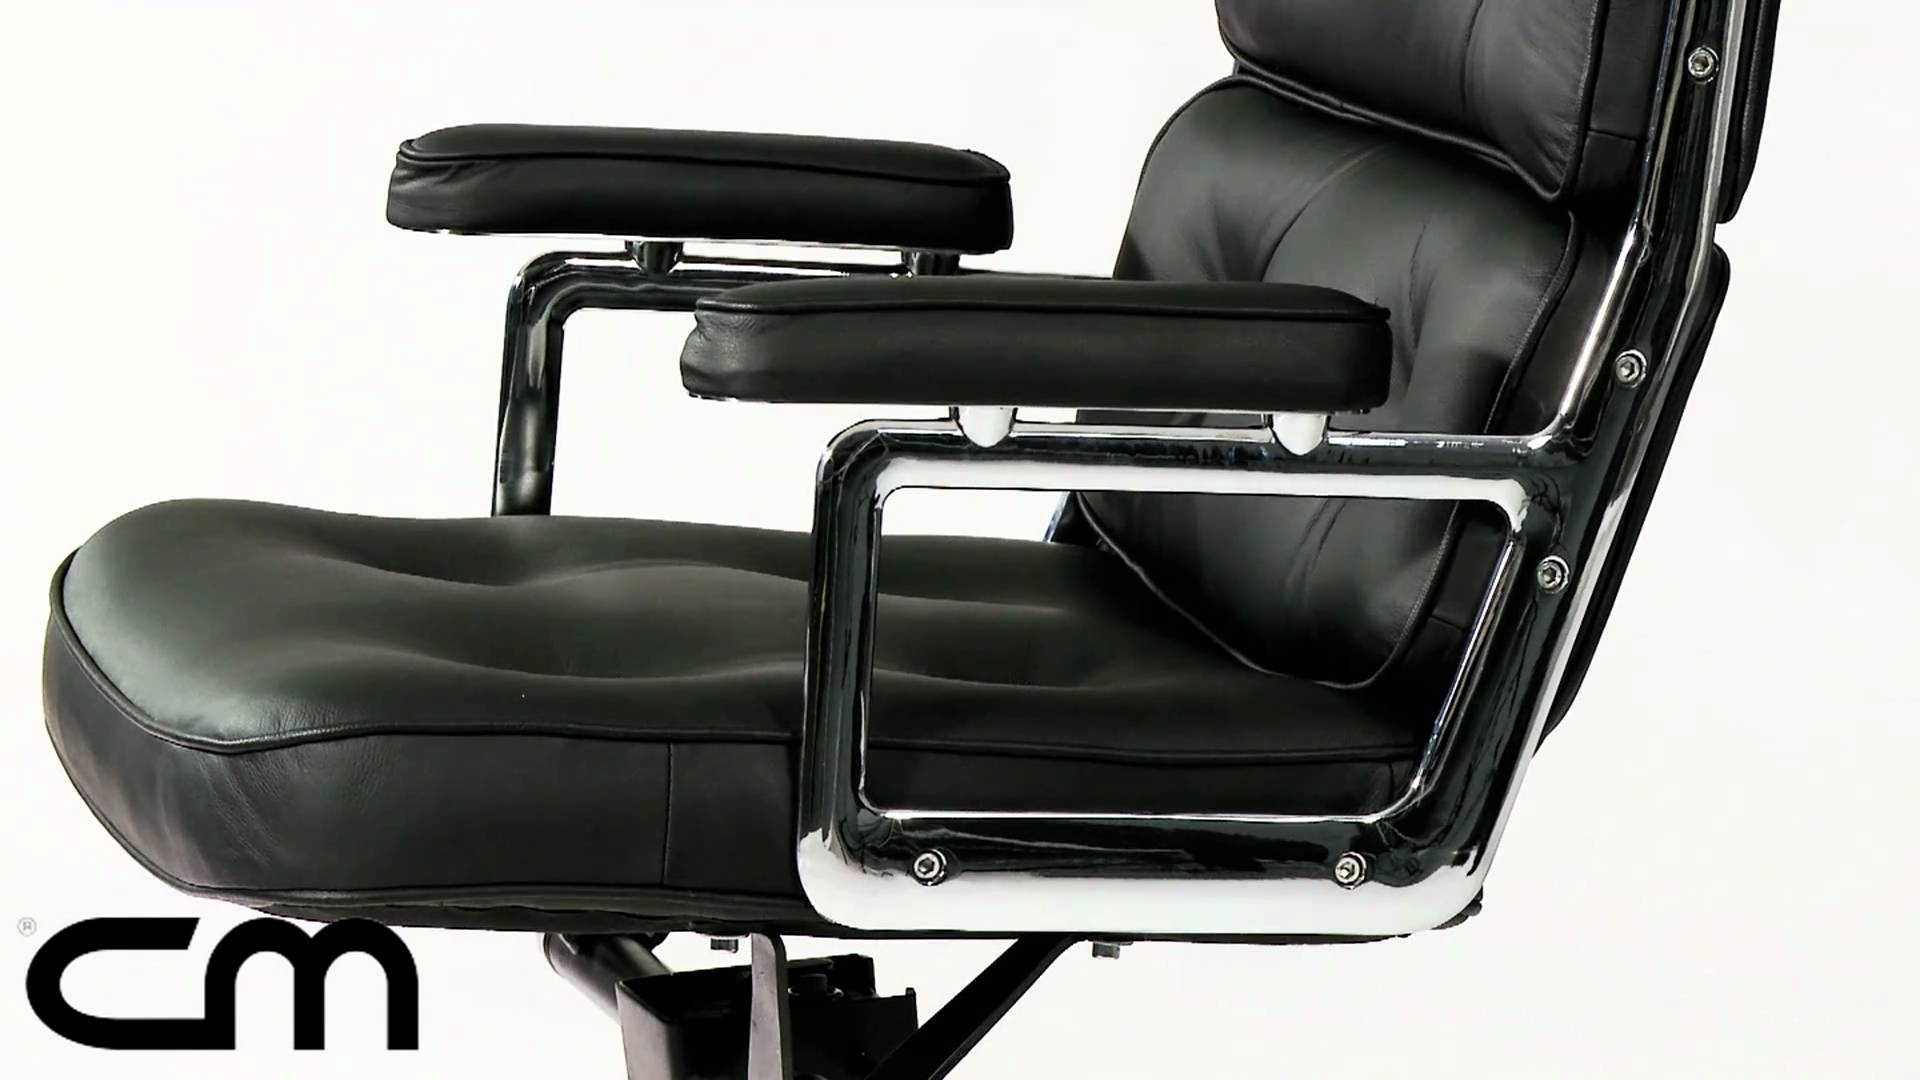 Well Known Best Eames Executive Chair Pictures – Liltigertoo With Regard To Executive Office Armchairs (View 17 of 20)